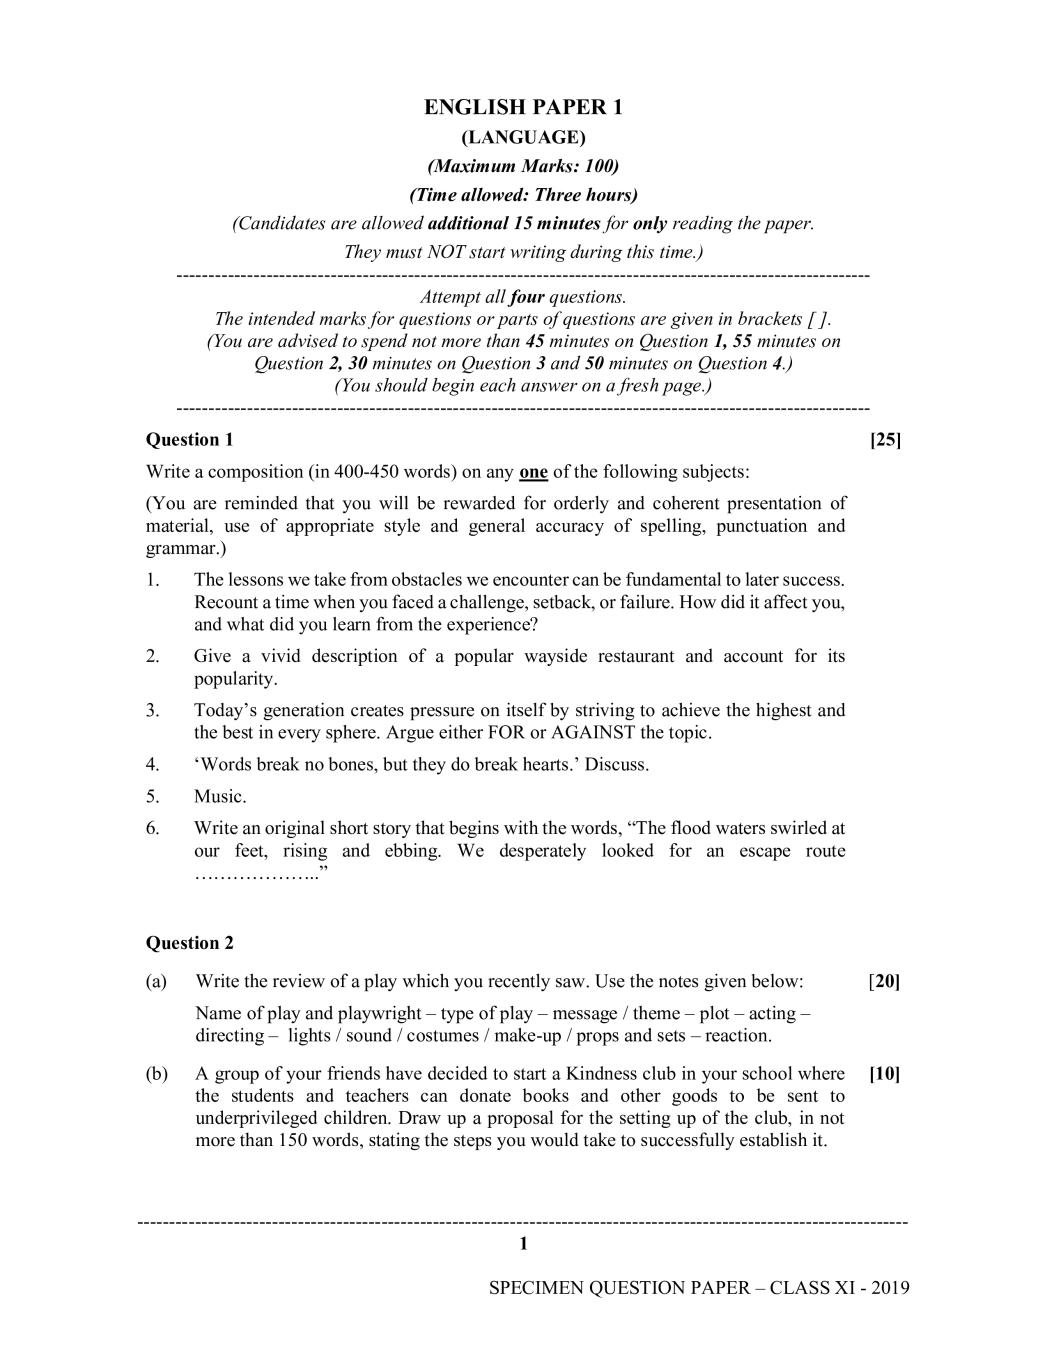 ISC Class 11 Specimen Paper 2020 – English Language (Paper 1) Sample